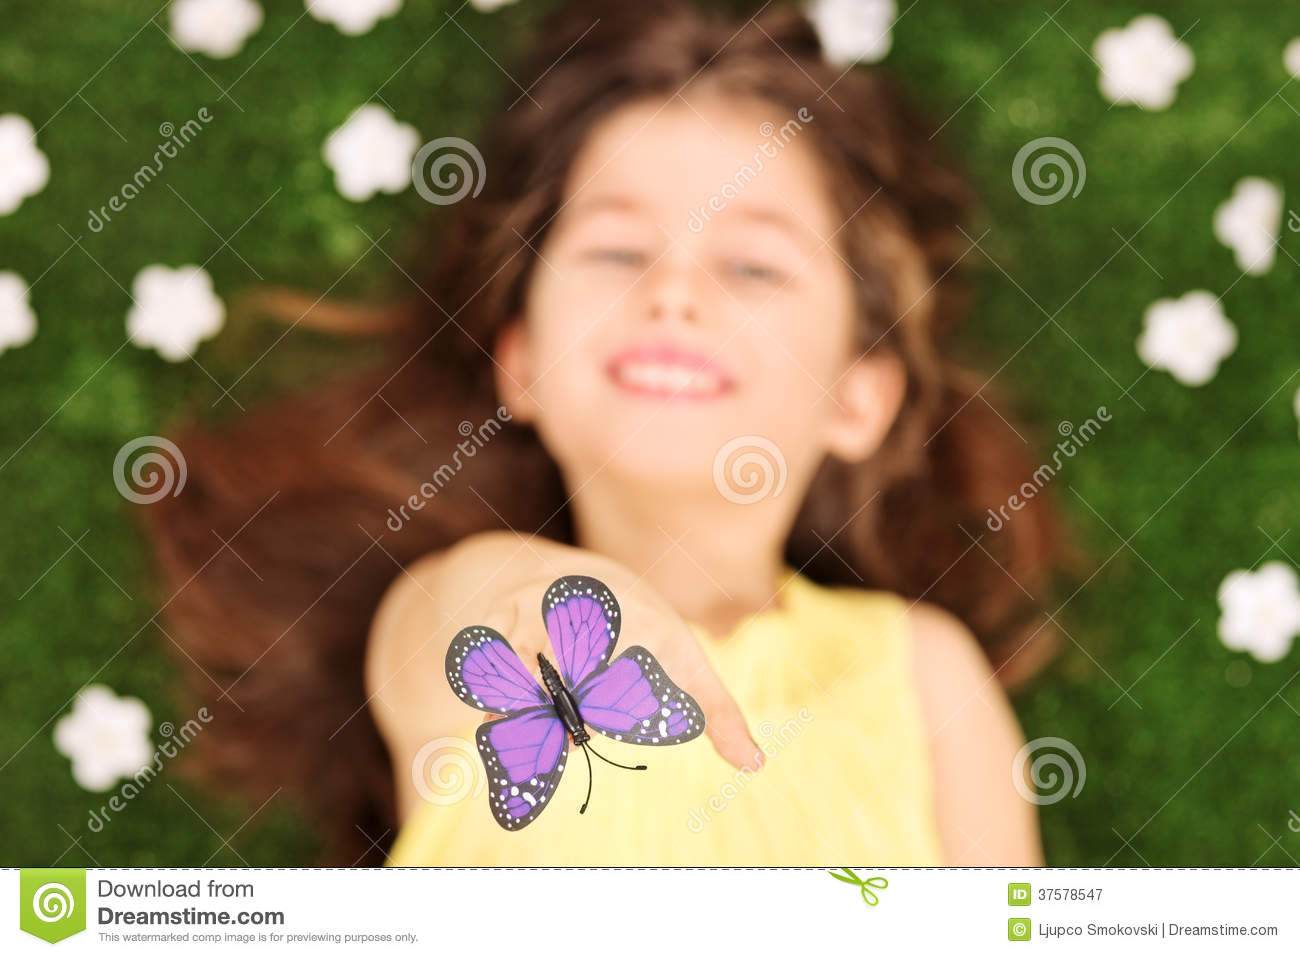 Little girl laying in meadow and reaching to touch butterfly